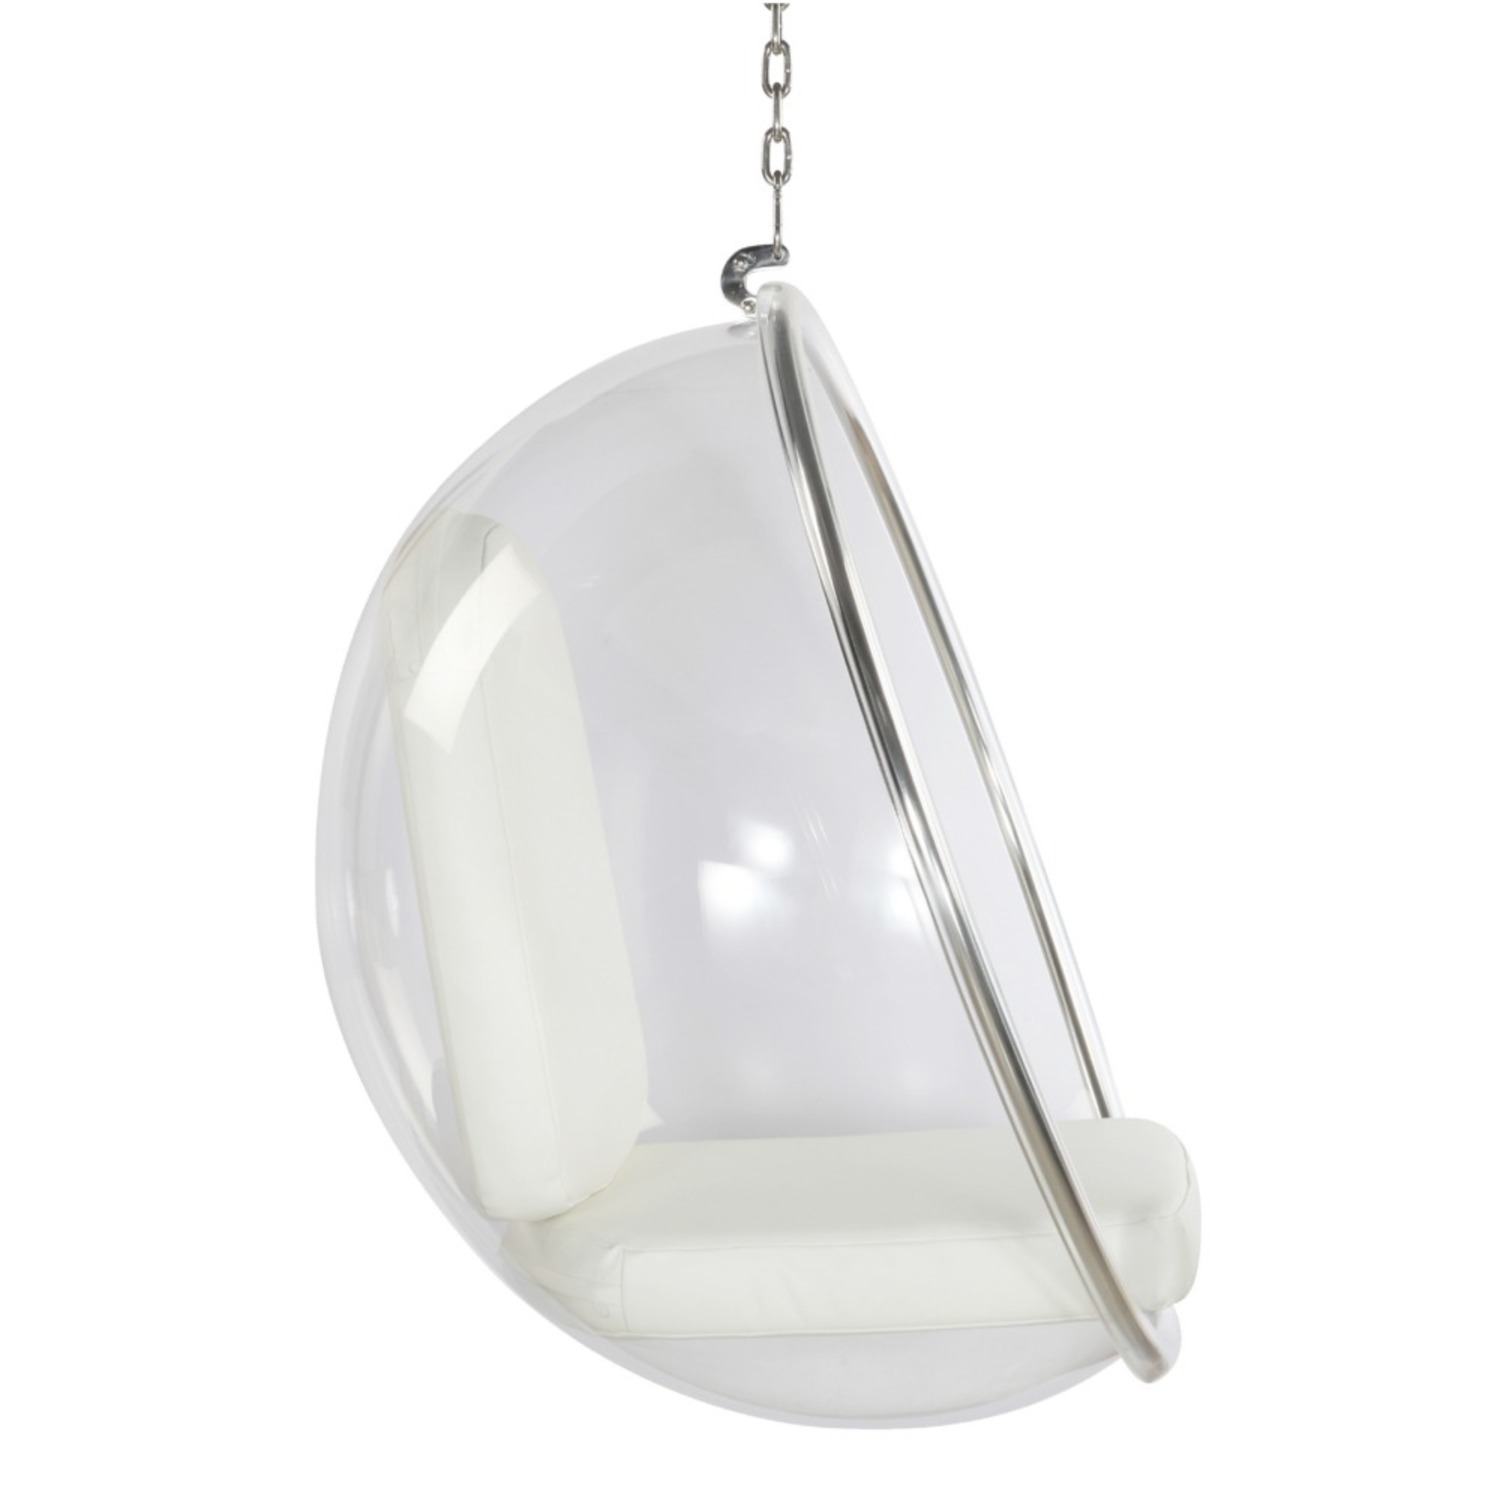 Hanging Chair In Clear Acrylic & White PU Leather - image-1